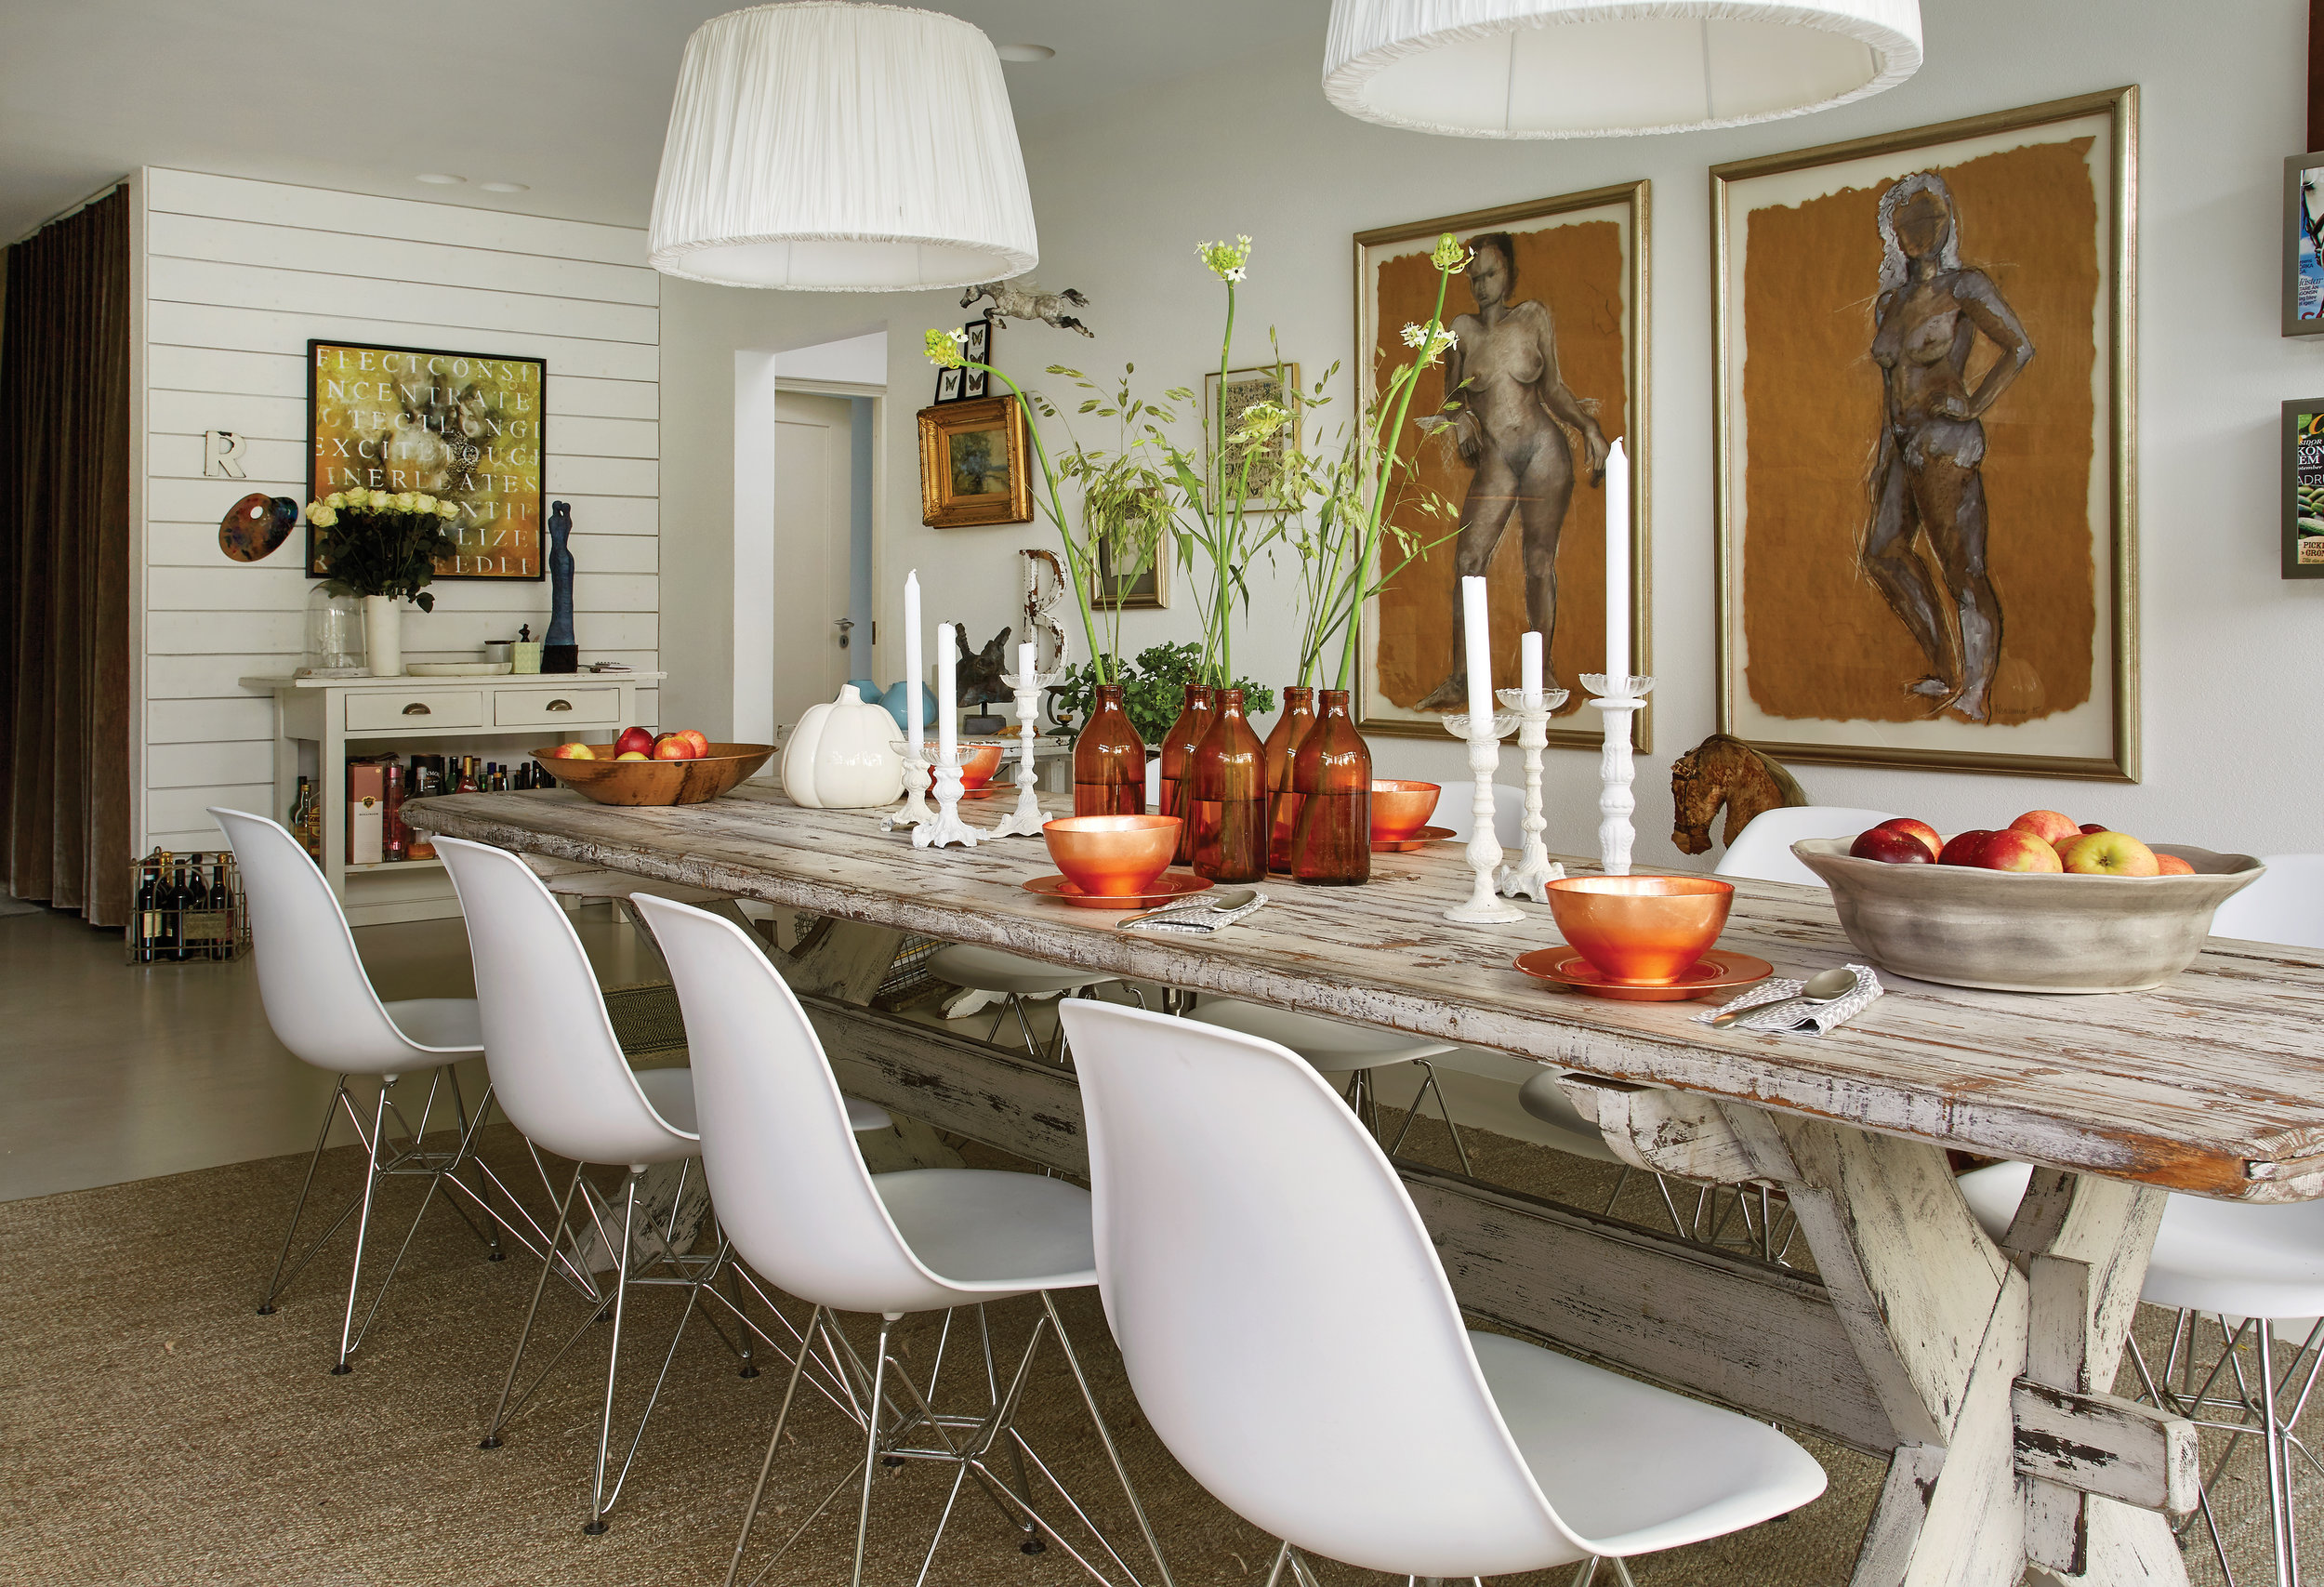 dining room from a project in sweden mixes mid-century eames chairs with vintage farmhouse table.